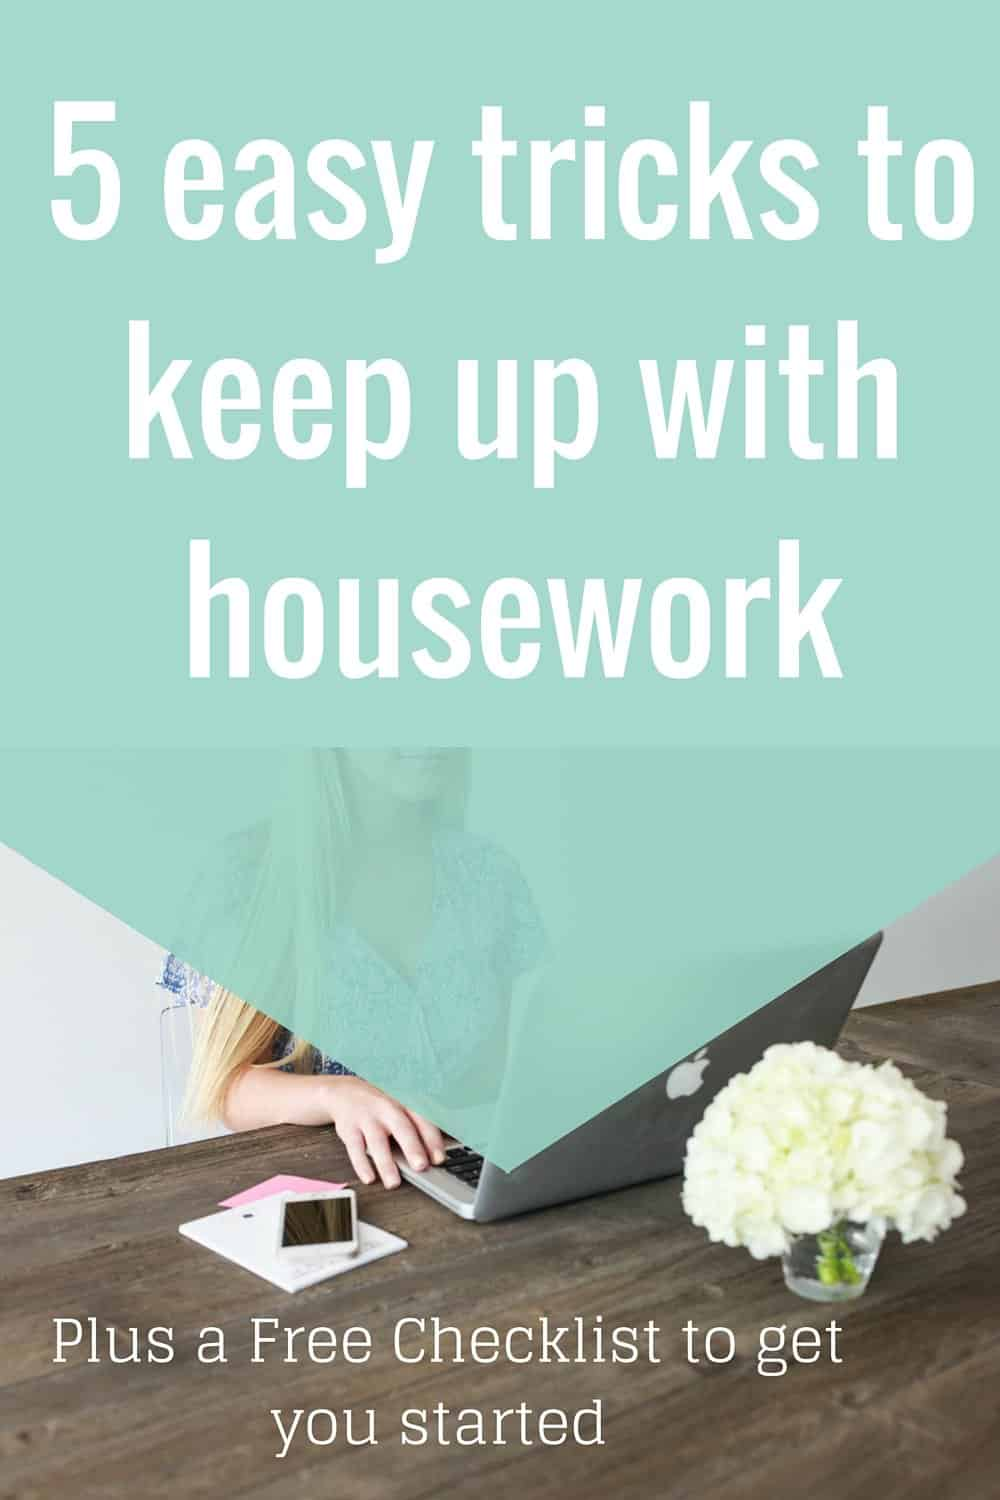 5 easy tips to keep up with housework. Plus get a free checklist to help you get started on organizing your life.